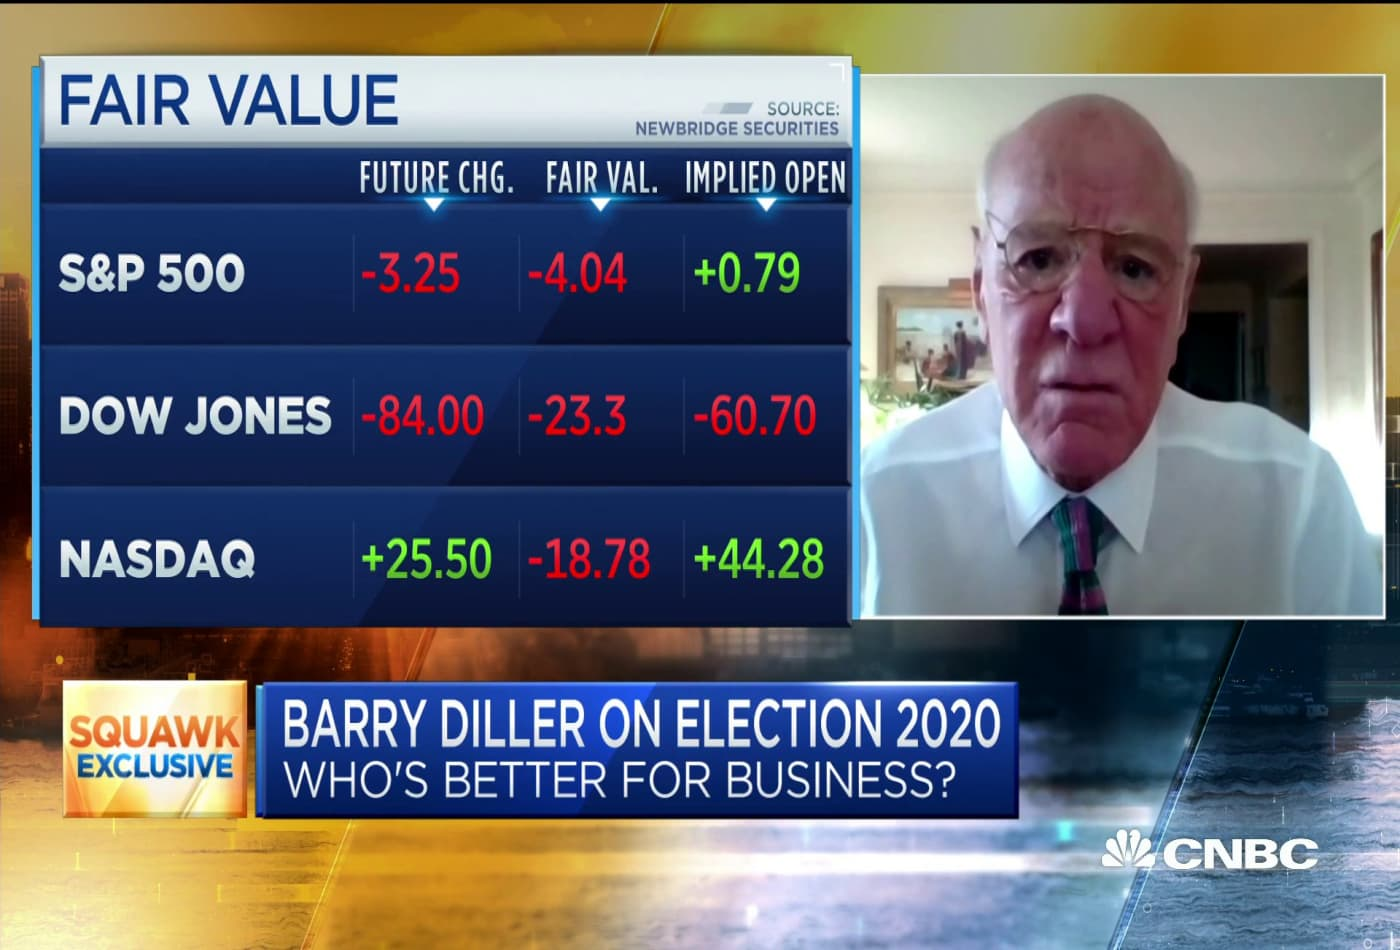 Billionaire Barry Diller calls the stock market 'speculation,' urges everyone to save cash